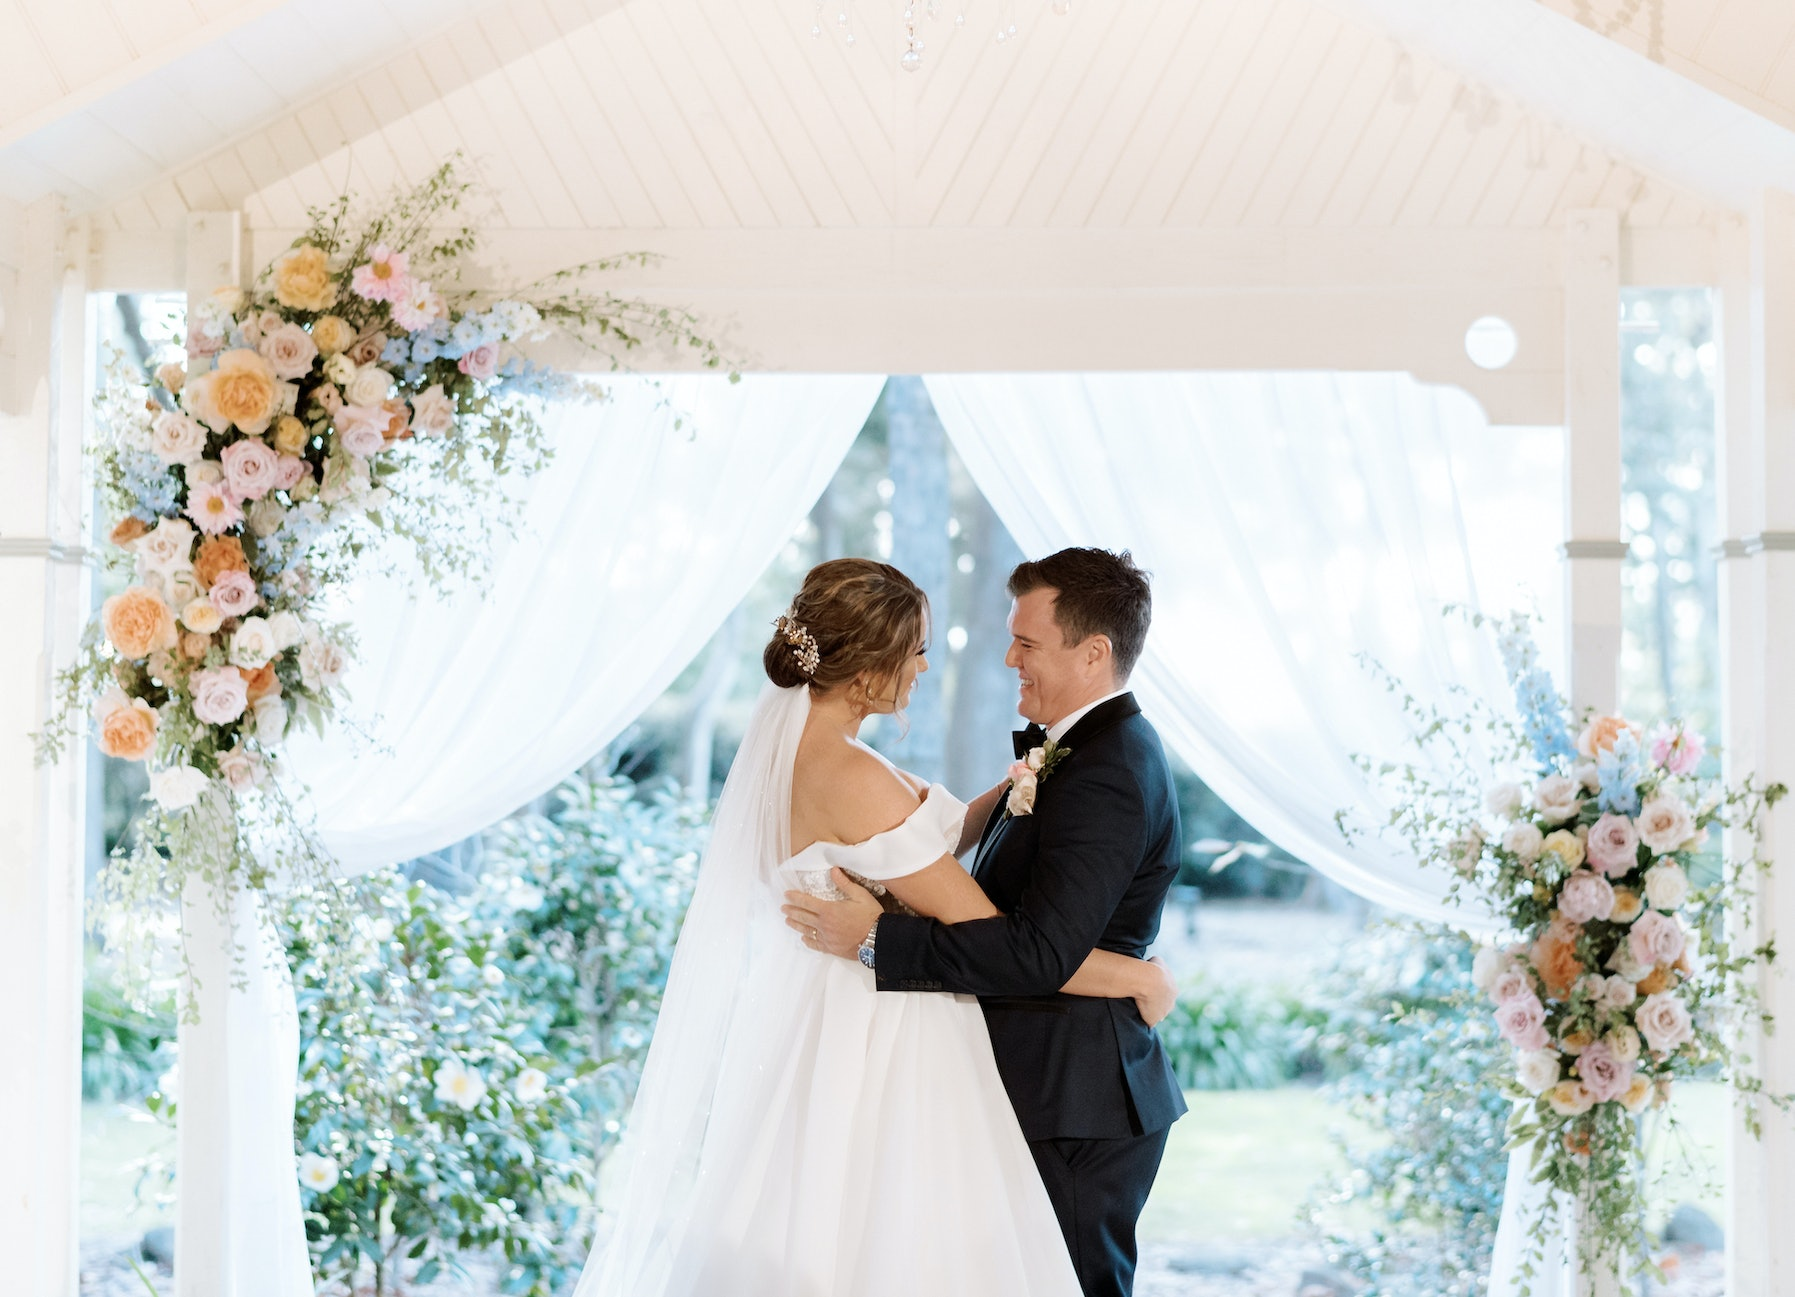 Bride and Groom standing at aisle